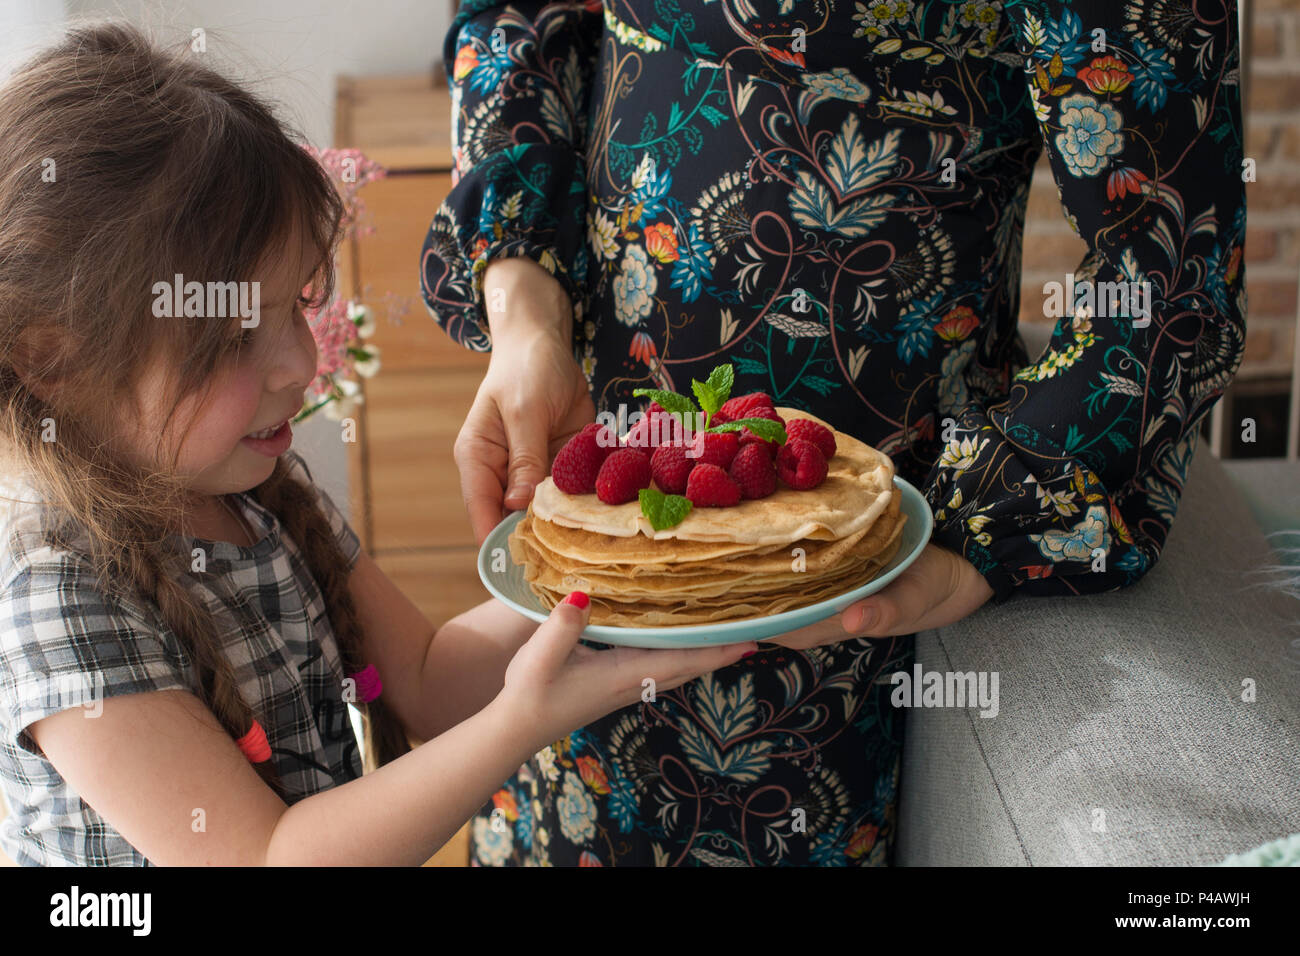 Mom and the girl are holding a plate with homemade pancakes and berries. Delicious breakfast at home. A happy family. Good morning, - Stock Image